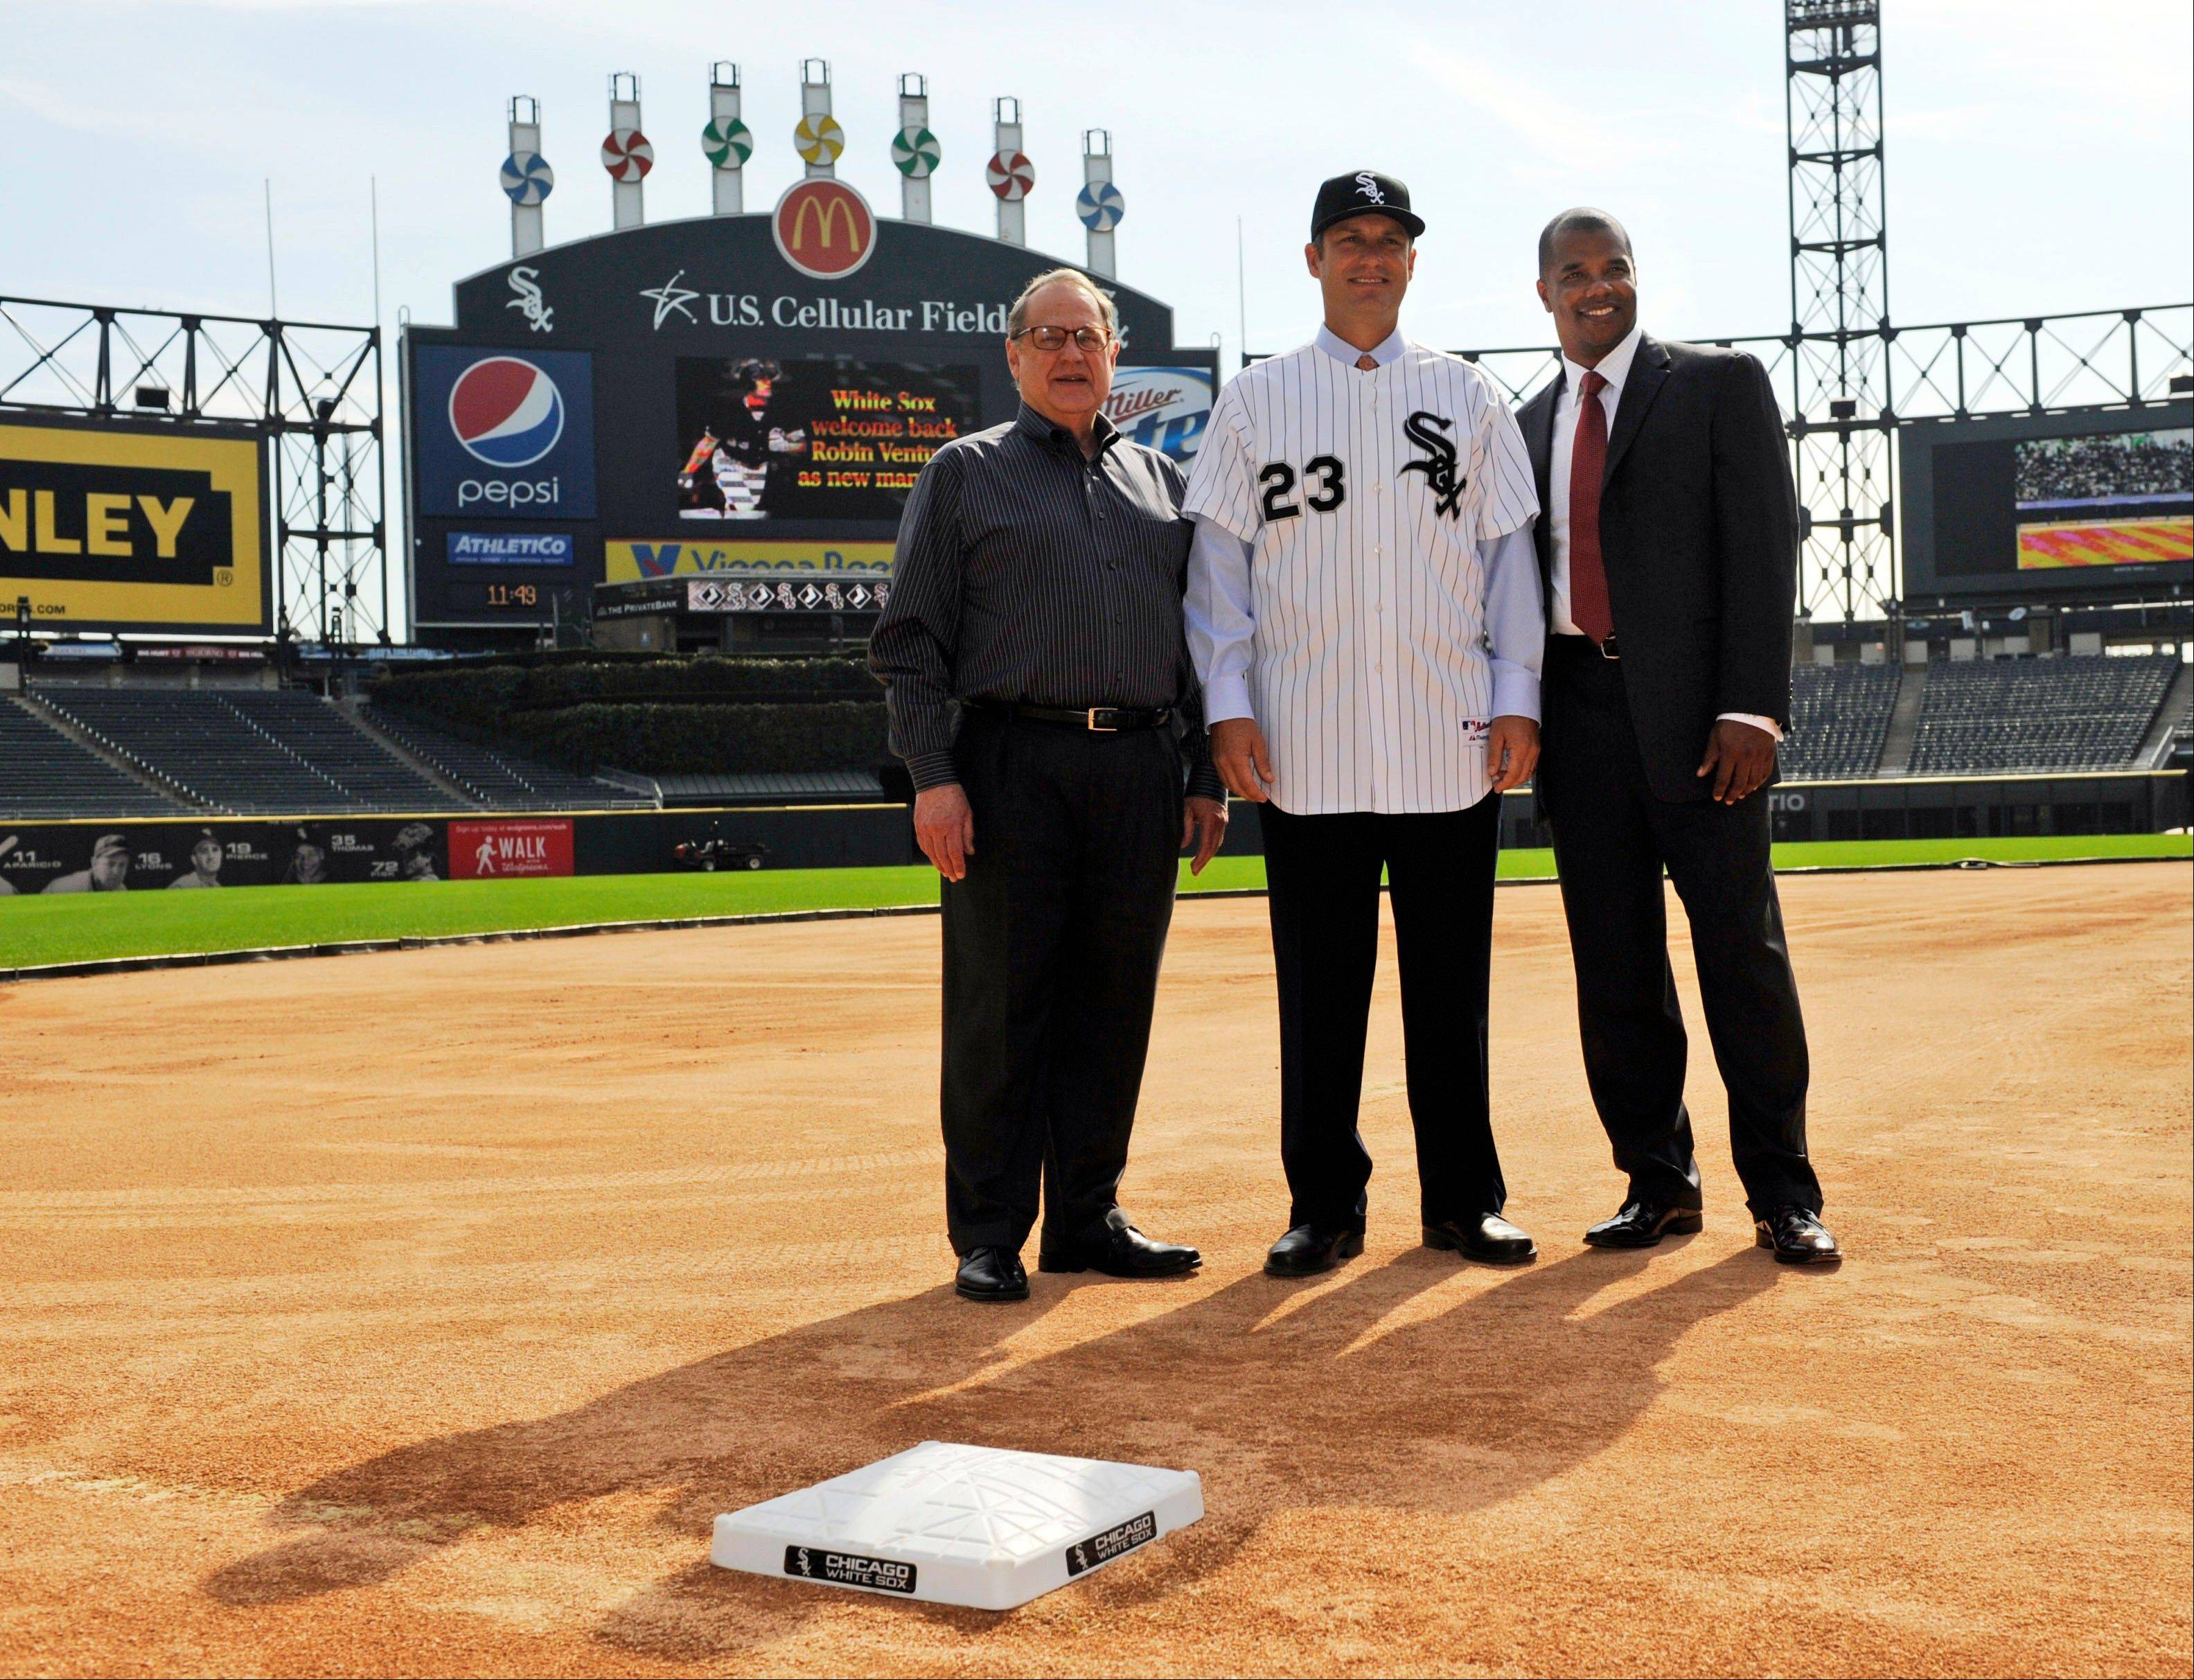 White Sox new manager Robin Ventura, center, poses for a photo with team Chairman Jerry Reinsdorf, left, and general manager Kenny Williams, right, after a baseball news conference in Chicago, Tuesday, Oct. 11, 2011.